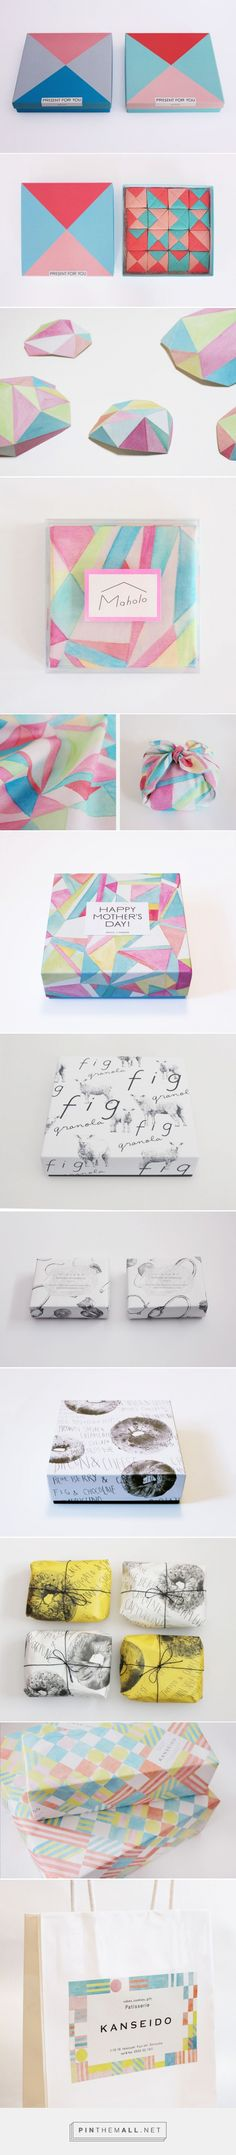 WORKS - yuka-shiramoto curated by Packaging Diva PD. A beautiful collection of packaging and wrapping. Cd Cover Design, Ad Design, Pattern Design, Print Design, Branding Design, Logo Design, Graphic Design, Design Research, Bottle Design